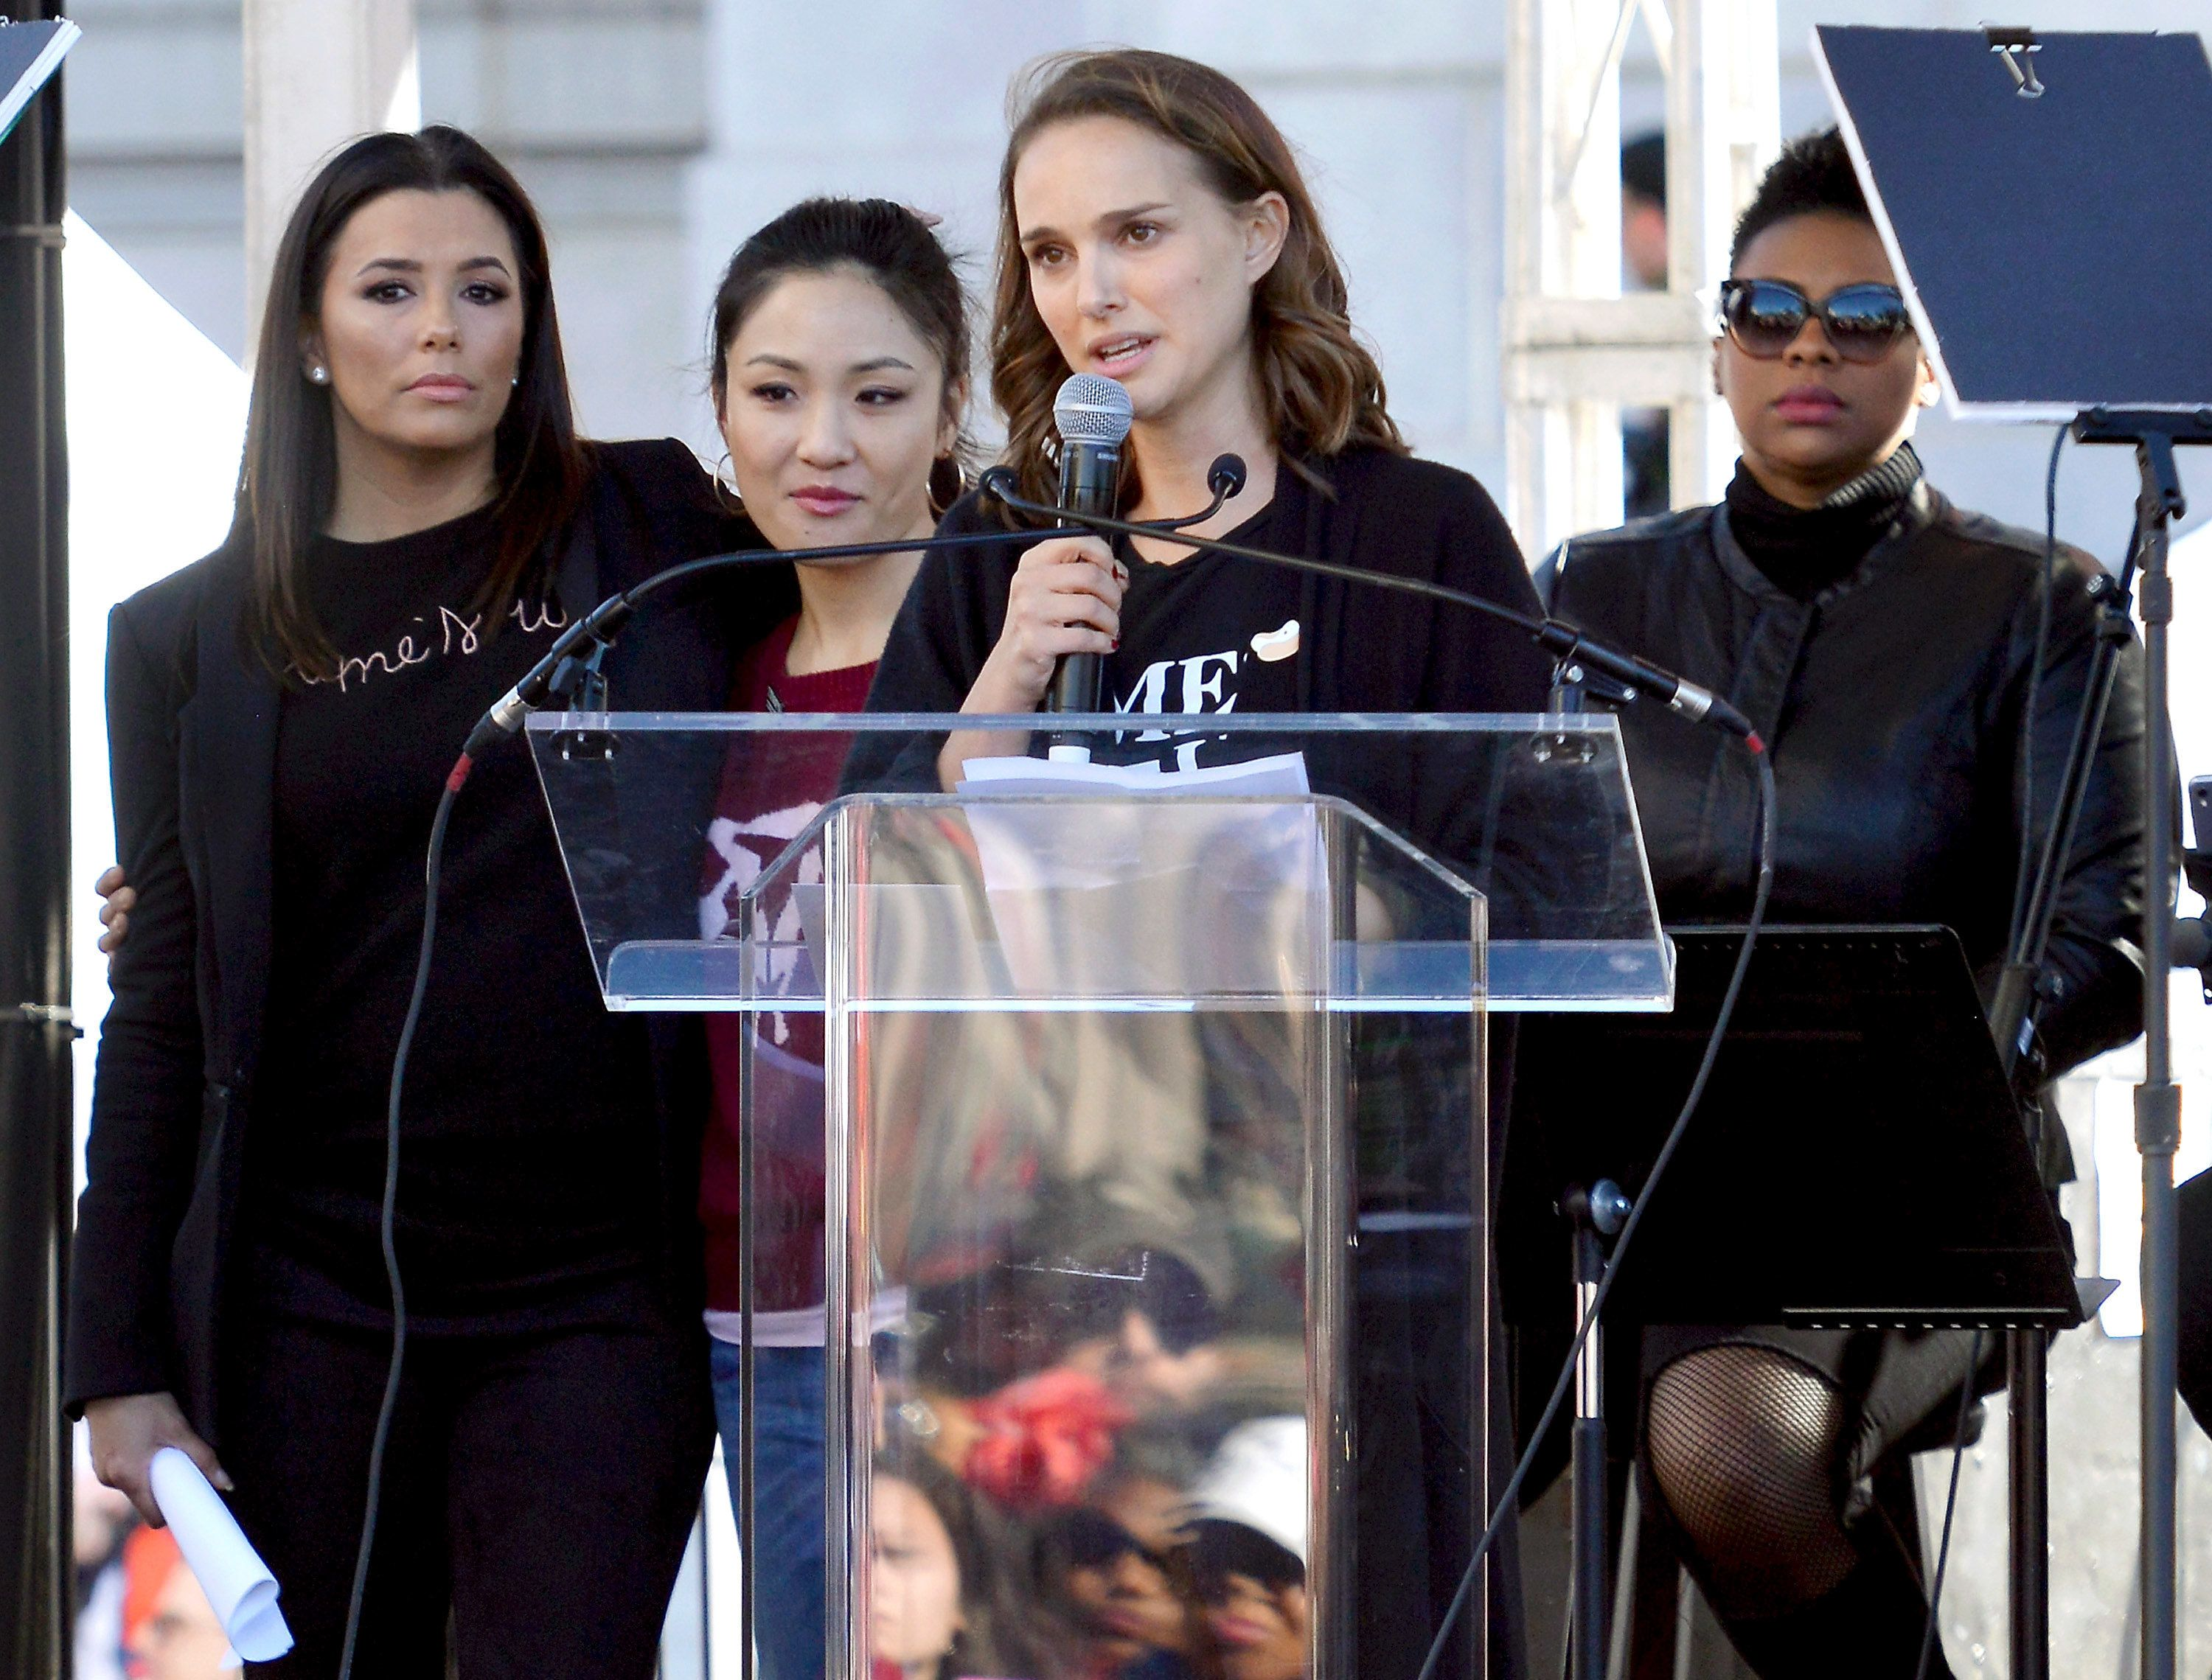 LOS ANGELES, CA - JANUARY 20:  (L-R) Actors Eva Longoria, Constance Wu and Natalie Portman speak during the Women's March Los Angeles 2018 on January 20, 2018 in Los Angeles, California.  (Photo by Chelsea Guglielmino/Getty Images)